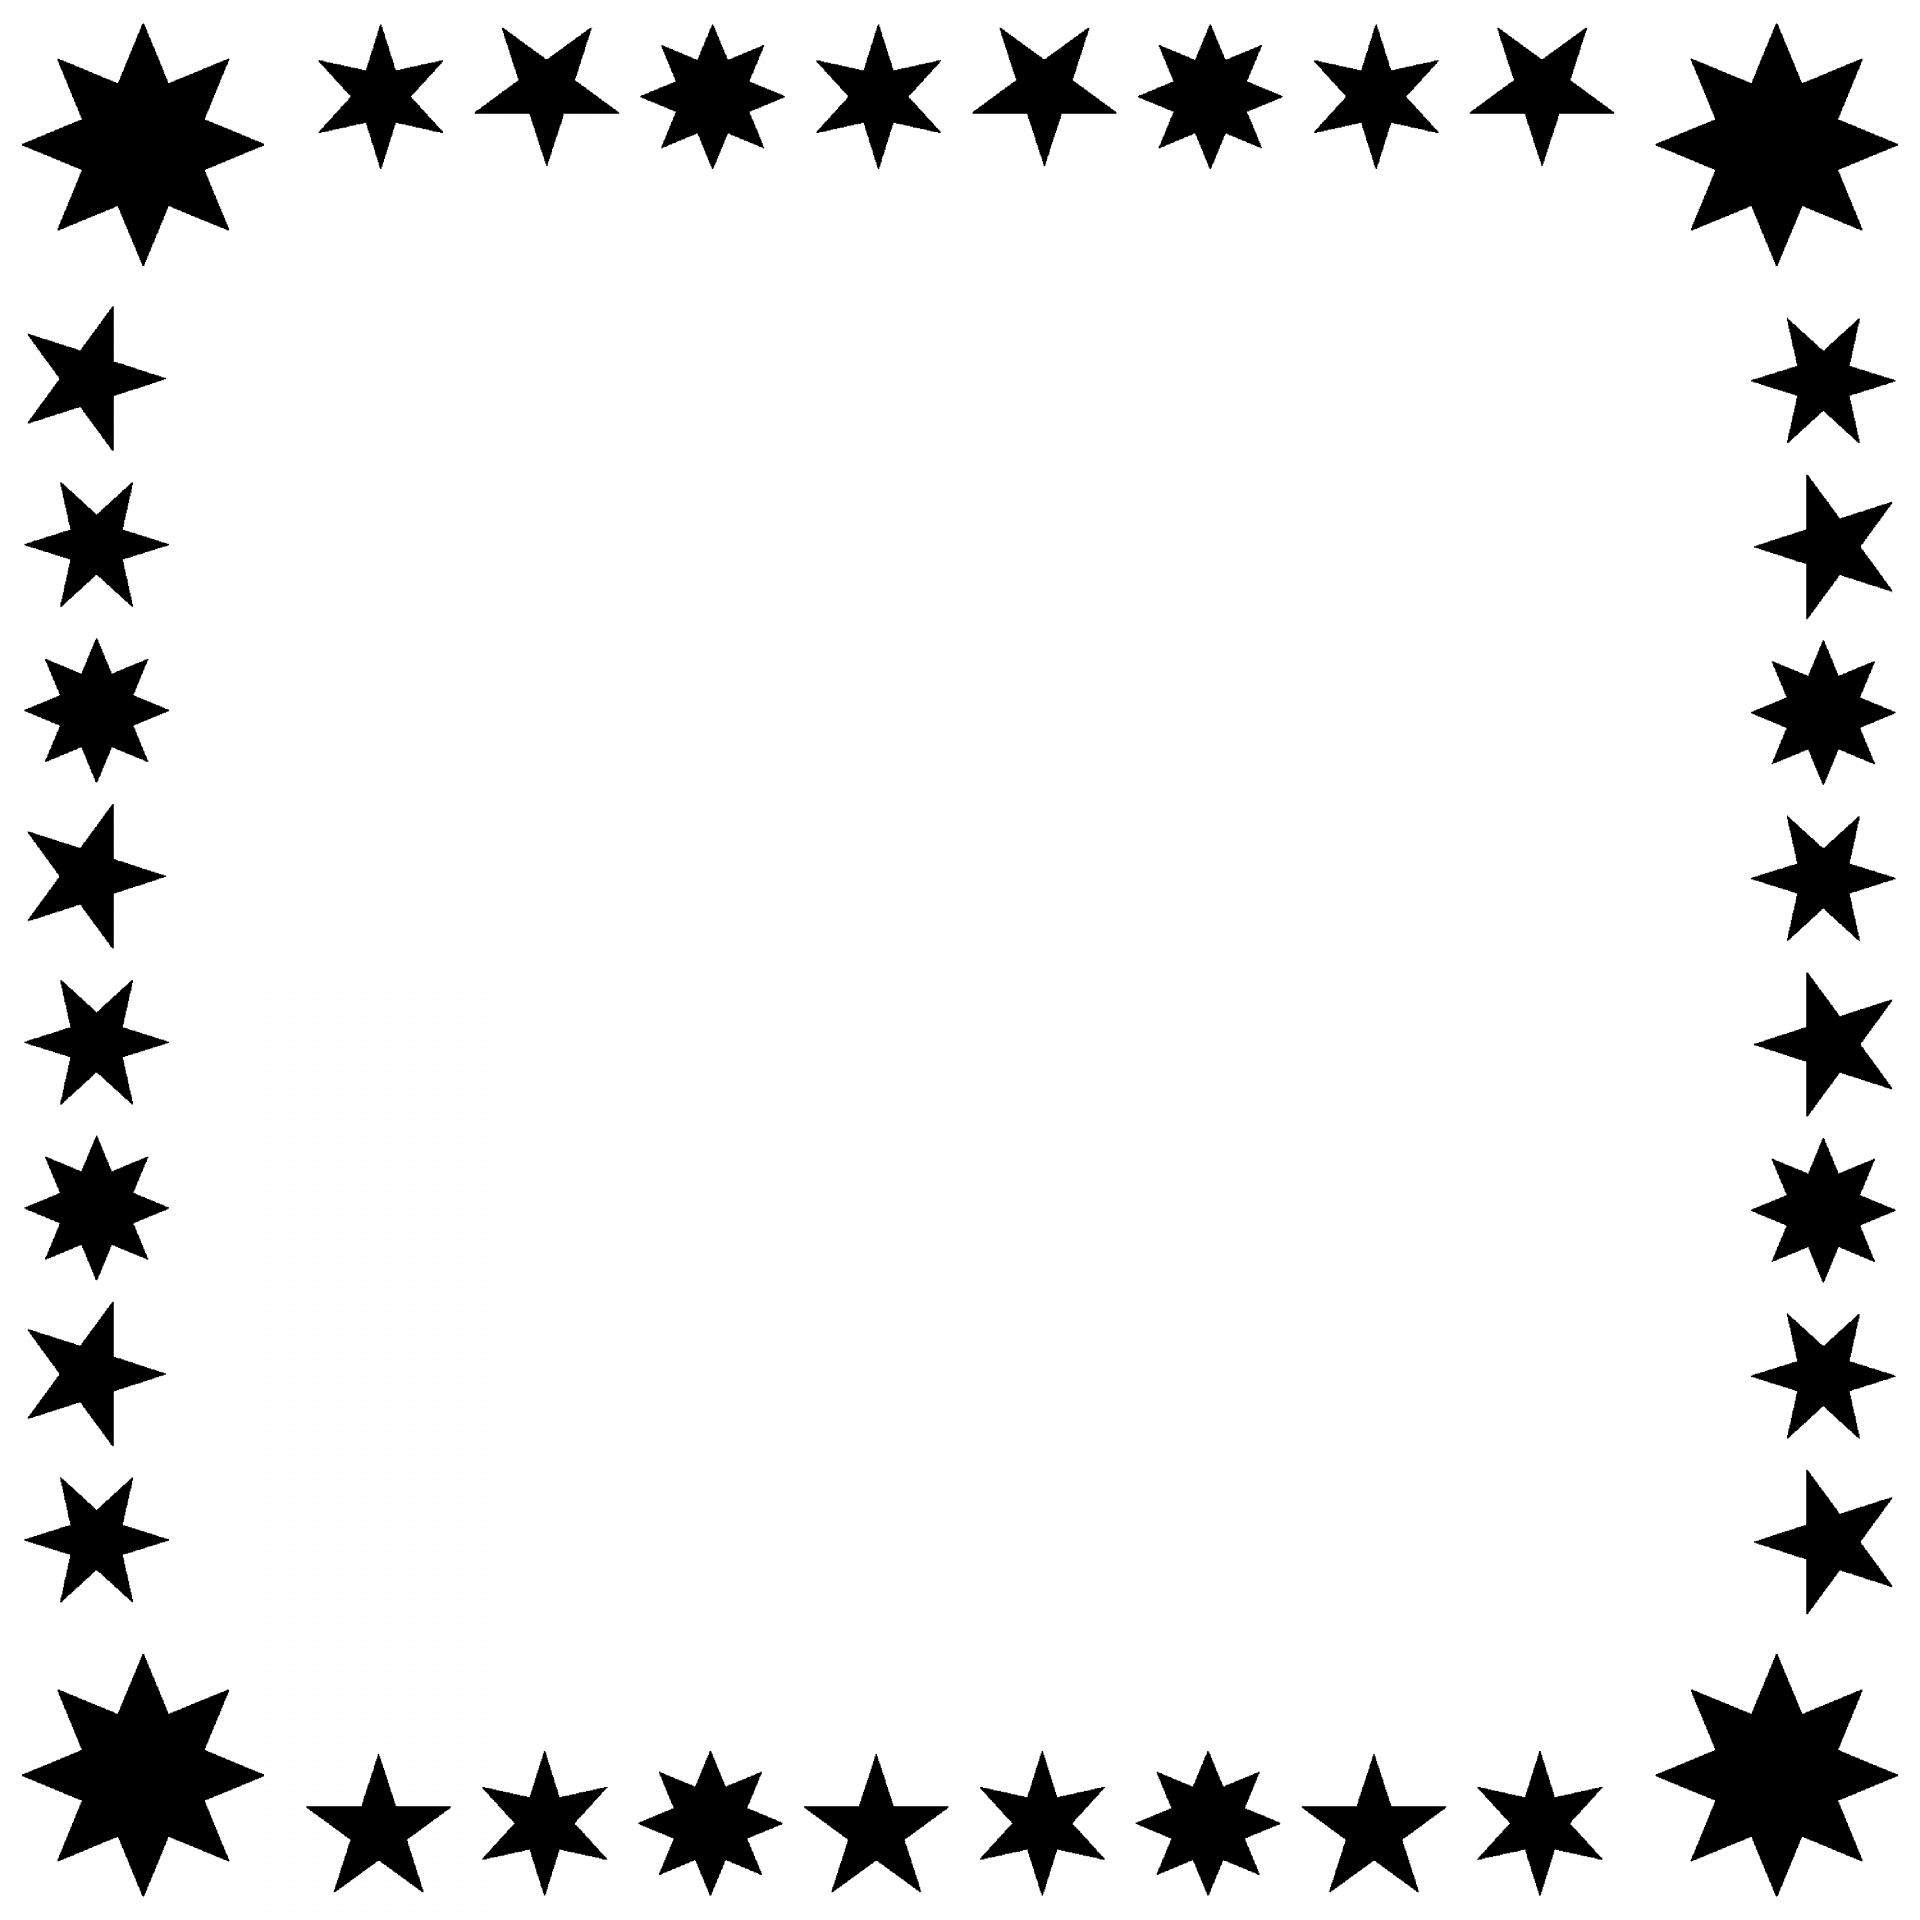 Star Frame Free Stock Photo